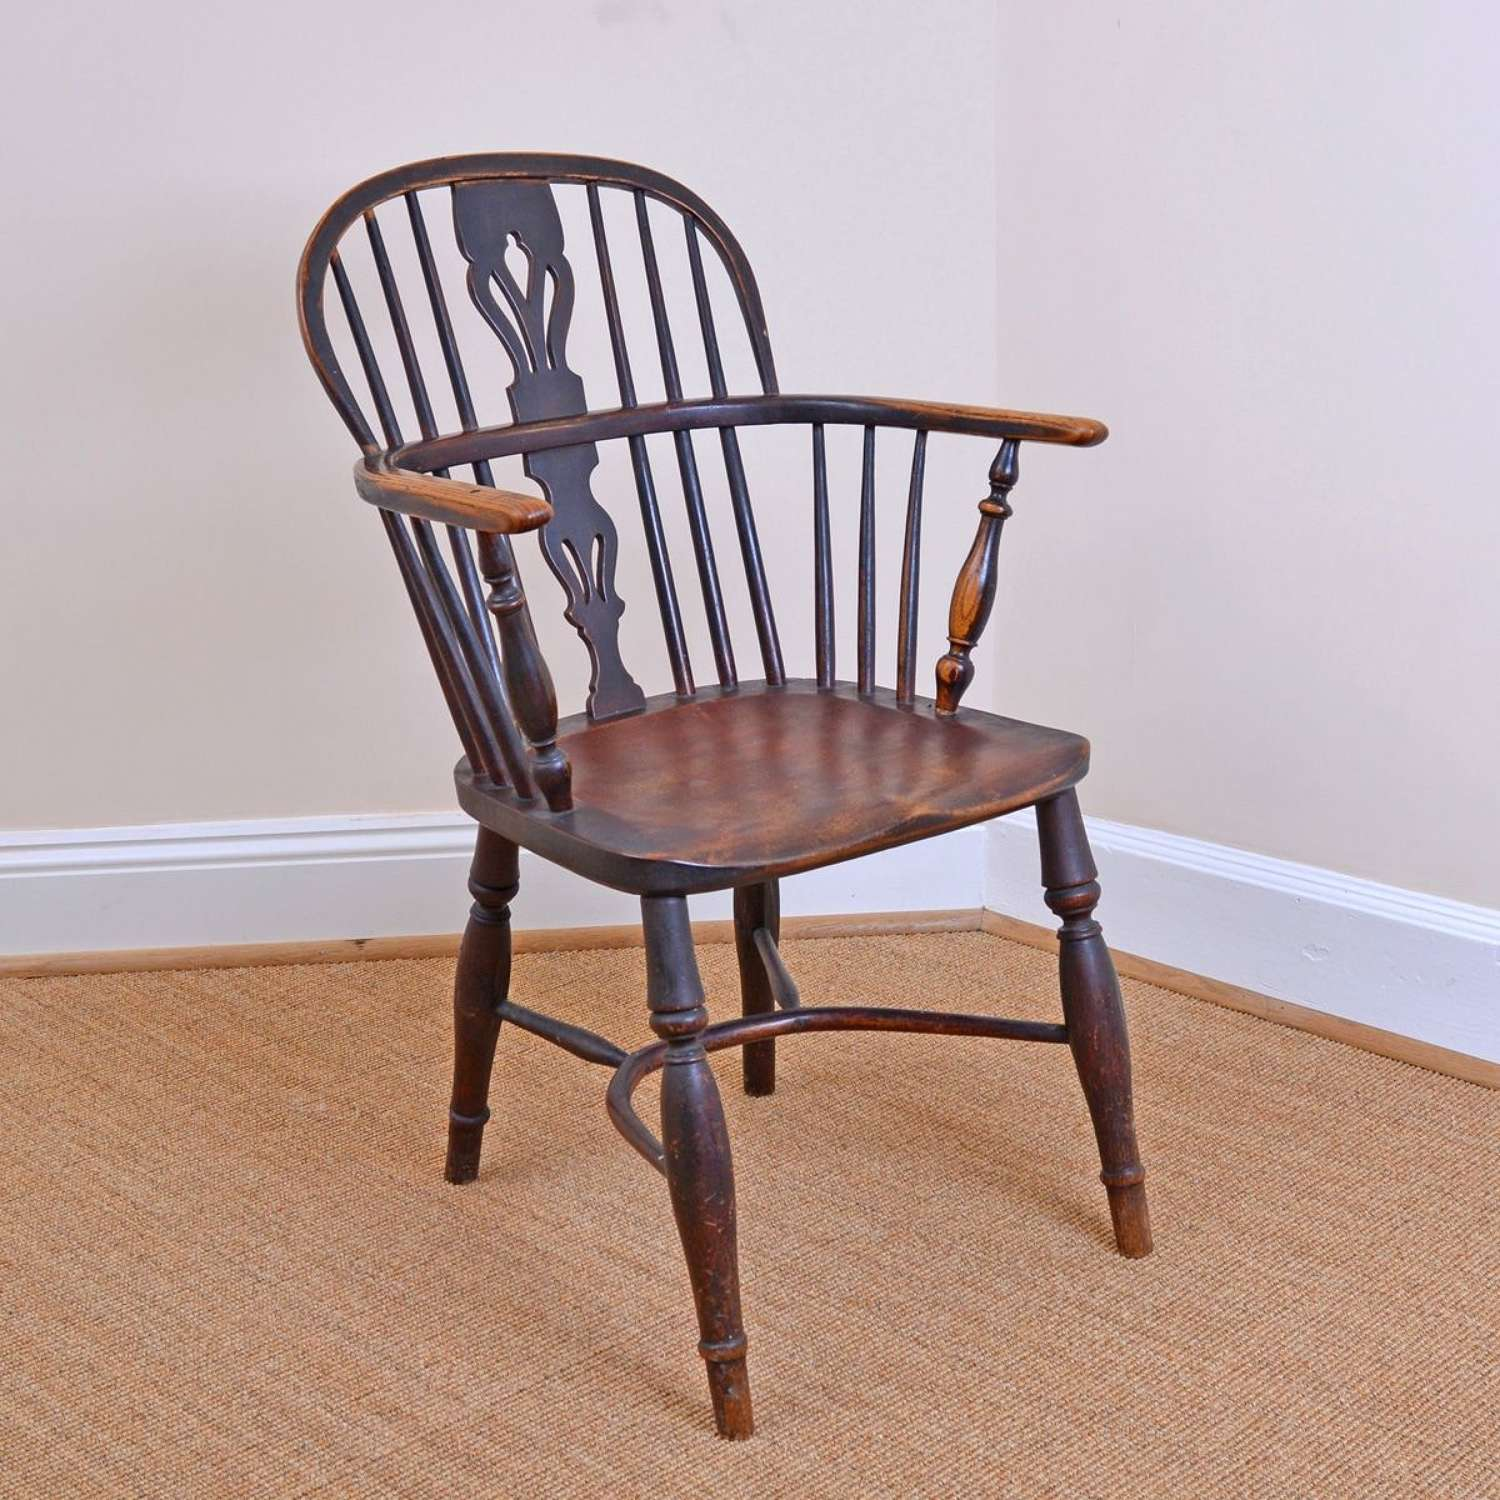 Lowback ash and elm Windsor chair